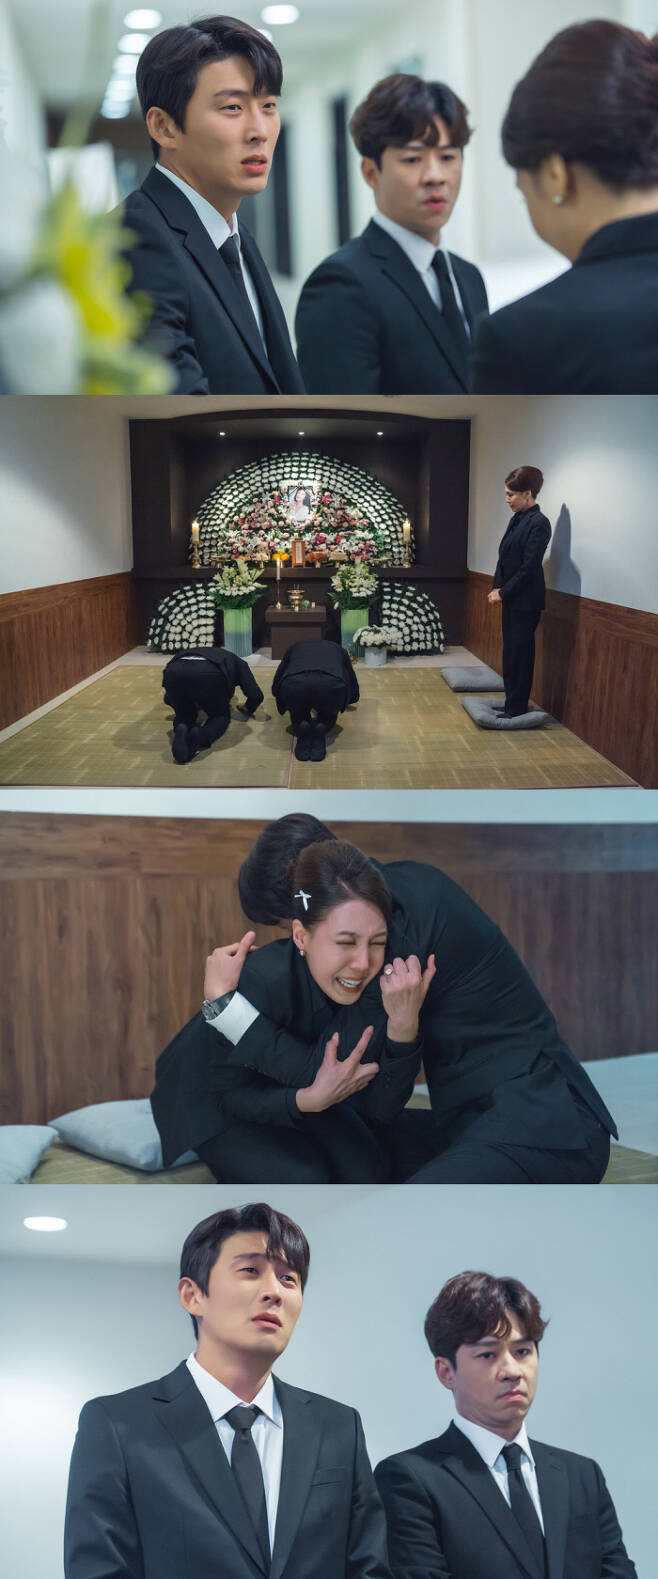 In Cheat on Me, If You Can, Go Joon was spotted visiting the funeral home of her own daughter, the White Pilisation (Fertilisation), which was her own daughter.The appearance of Go Joon, who was surprised to discover the representative of the agency, Jean Soo-kyoung, who keeps the funeral hall alone, and the appearance of Jean Soo-kyoung, who hugs him and wails him, are also revealed.KBS 2TV drama Cheat on Me, If You Can (directed by Kim Hyung-seok, Kim Min-tae/playplayplay by Lee Sung-min/production A Story) unveiled a steel showing Han Guizhou (Go Joon) going to the funeral hall of the Back Fertilisation with Son Jin-ho (played by Jung Sang-hoon).Fertilisation, Guizhous inner daughter, is an MC of Morning Midam, which brought a secret meeting with Guizhou twice a week.Guizhou informed Fertilisation of the breakup to advance to politics, but Fertilisation did not accept it.I also visit the house of Guizhou and Kang Yeo-ju (Cho Yeo-jung) to make Guizhou embarrassing.But the very next day Fertilisation went missing, eventually returning to a cold body and shocking.In the meantime, the photo shows the image of Guizhou who visited the funeral hall of Fertilisation.Her funeral home, once famous as a Korean Wave star, is a quiet one. Guizhou is surprised to find someone at the funeral home.She is the representative of Fertilisations agency, Yoon Hyung-sook (Jeon Soo-kyoung).Hyung-suk is the long-held man who watches Fertilisation, the only one keeping the end of Fertilisation.Hyung Sook, who is well aware of Fertilisation, is expected to reveal new facts about Fertilisation, and Hyung Sook, who watched him raise his bow in front of the portrait of Fertilisation, is holding Guizhou and crying storm tears.Did the agency representative Hyung Sook know the relationship between Guizhou and Fertilisation?In the ninth episode, Yoon Hyung-sook, the representative of Fertilisations agency, will appear for the first time, said the production team of Cheat on Me, If You Can. We hop